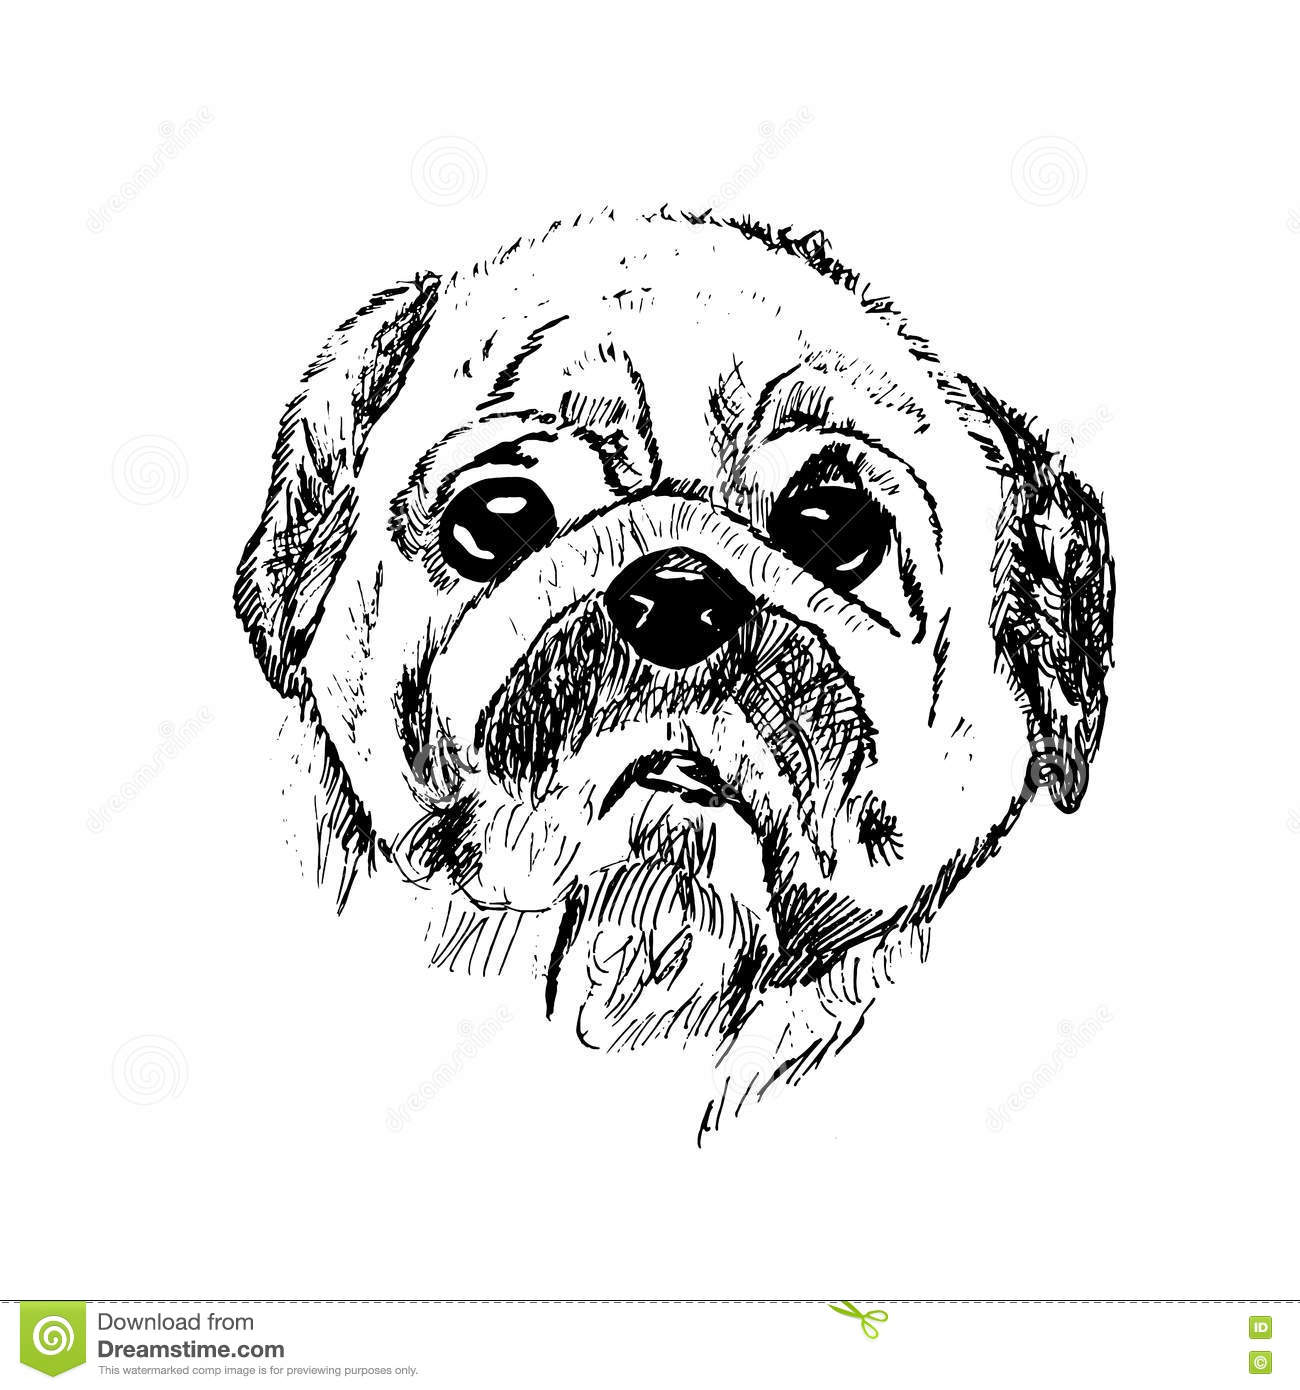 Black And White Sketch Of A Dog Stock Illustration - Illustration of